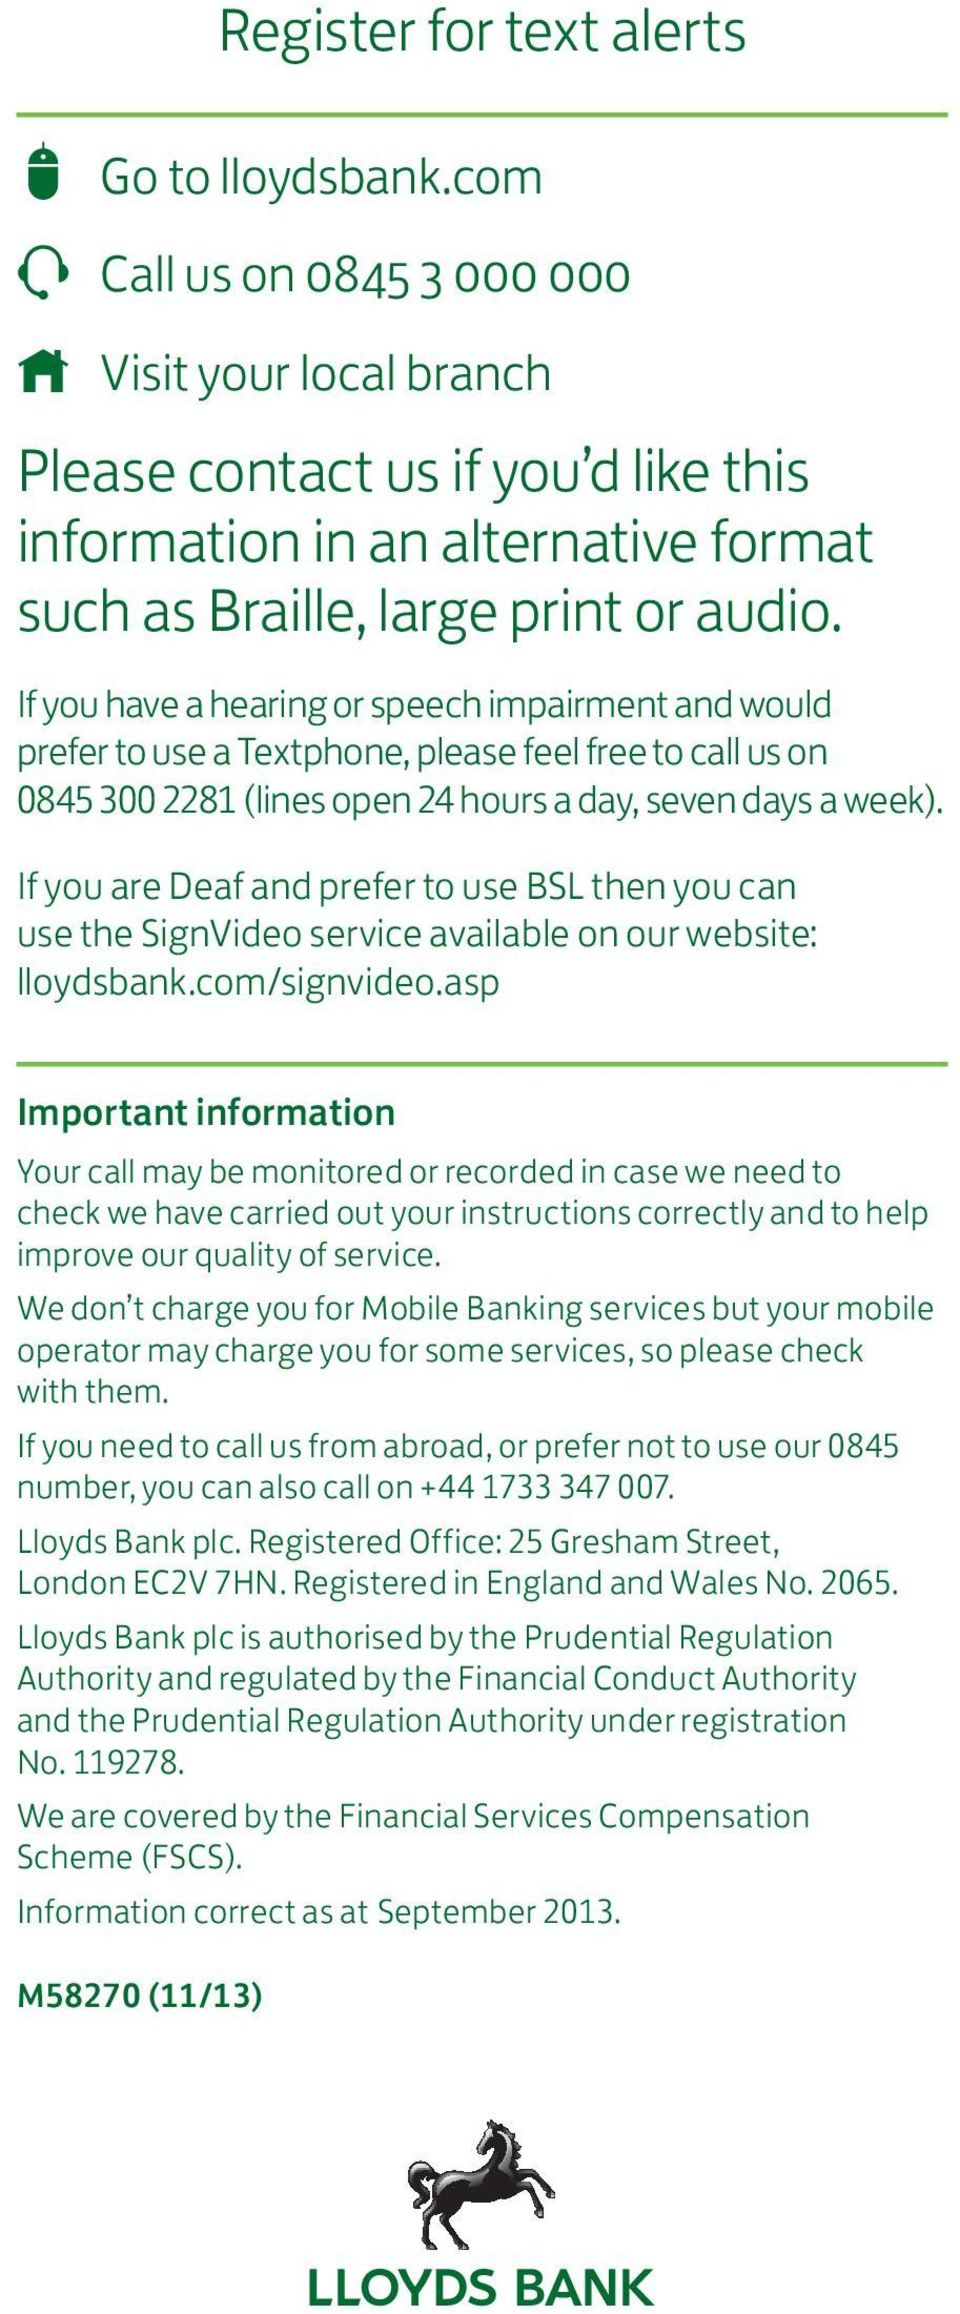 If you have a hearing or speech impairment and would prefer to use a Textphone, please feel free to call us on 0845 300 2281 (lines open 24 hours a day, seven days a week).